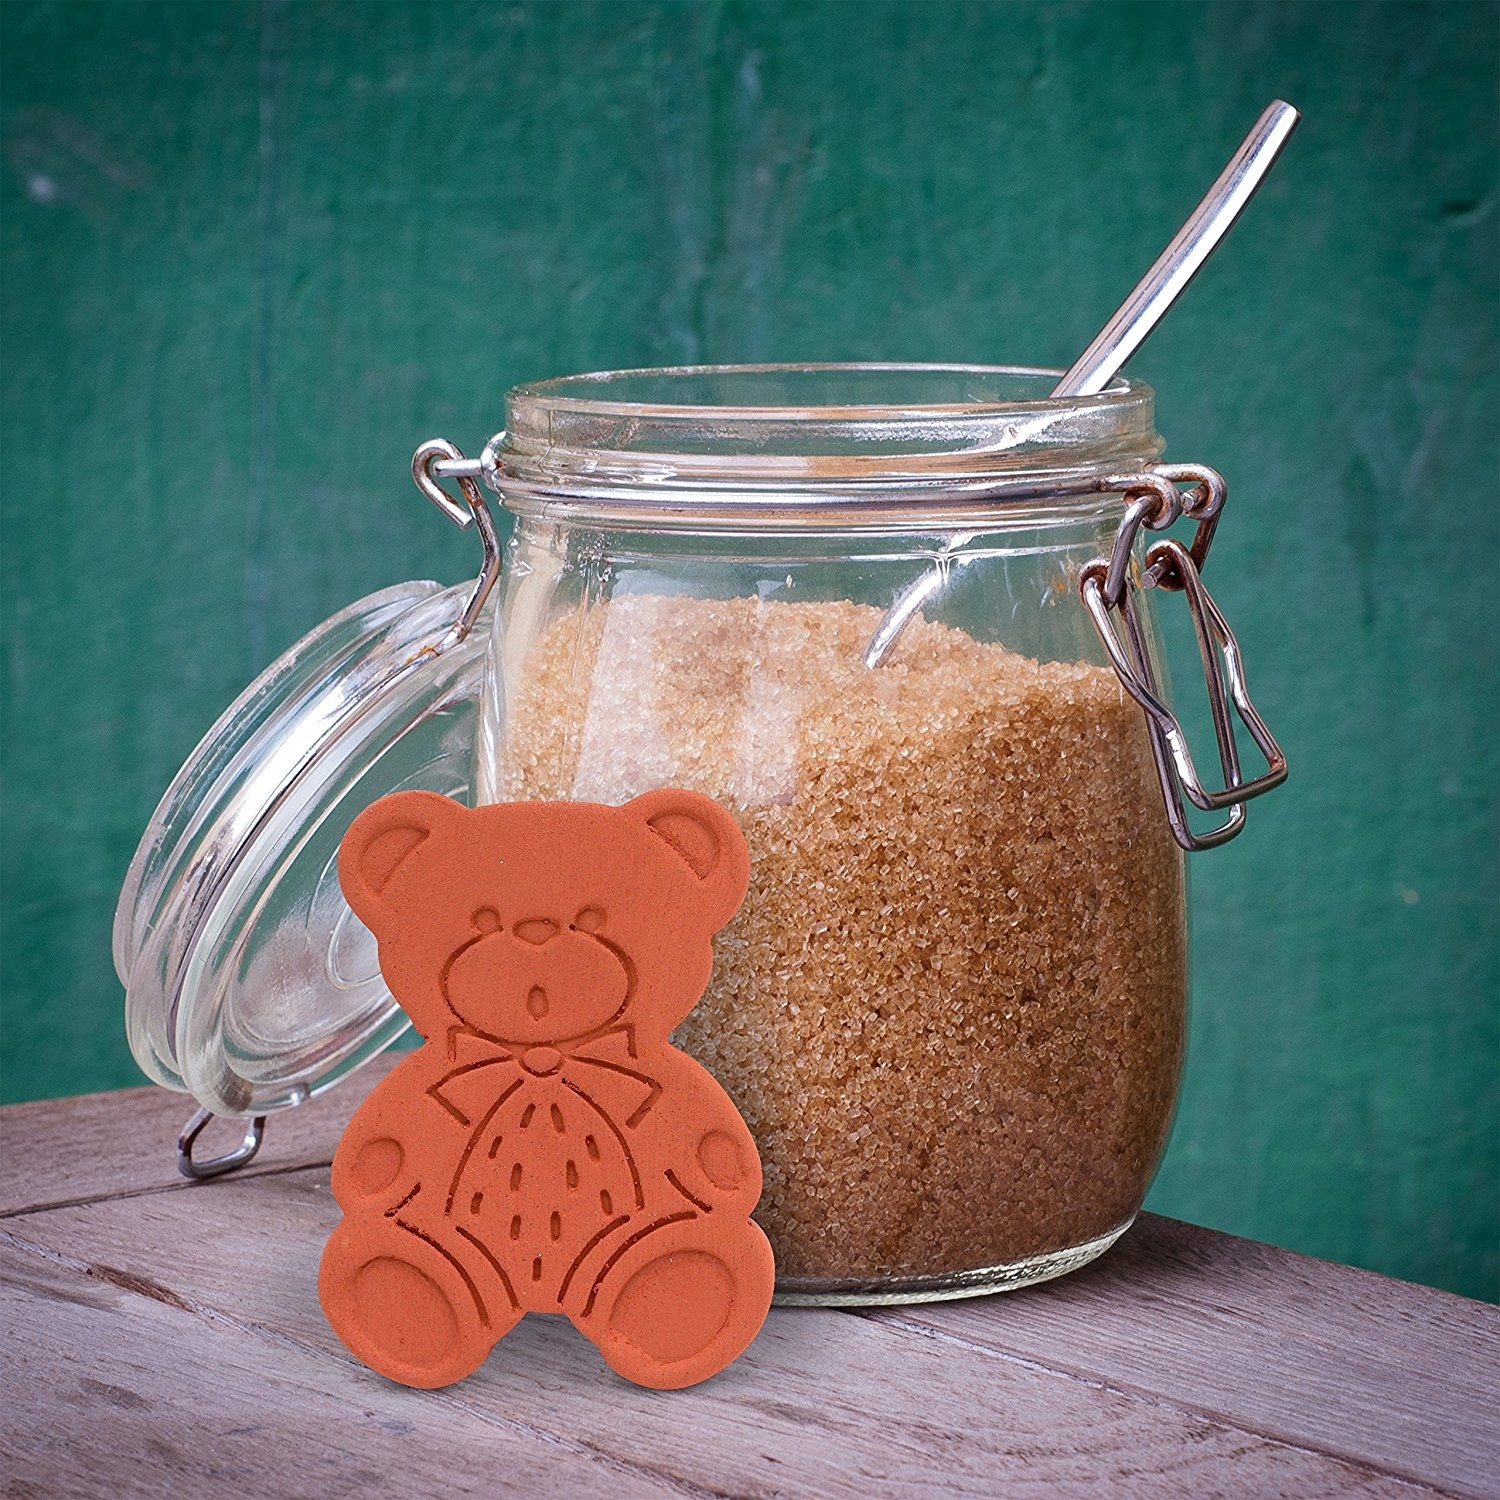 A bear-shaped sugar freshener in front of a jar of brown sugar